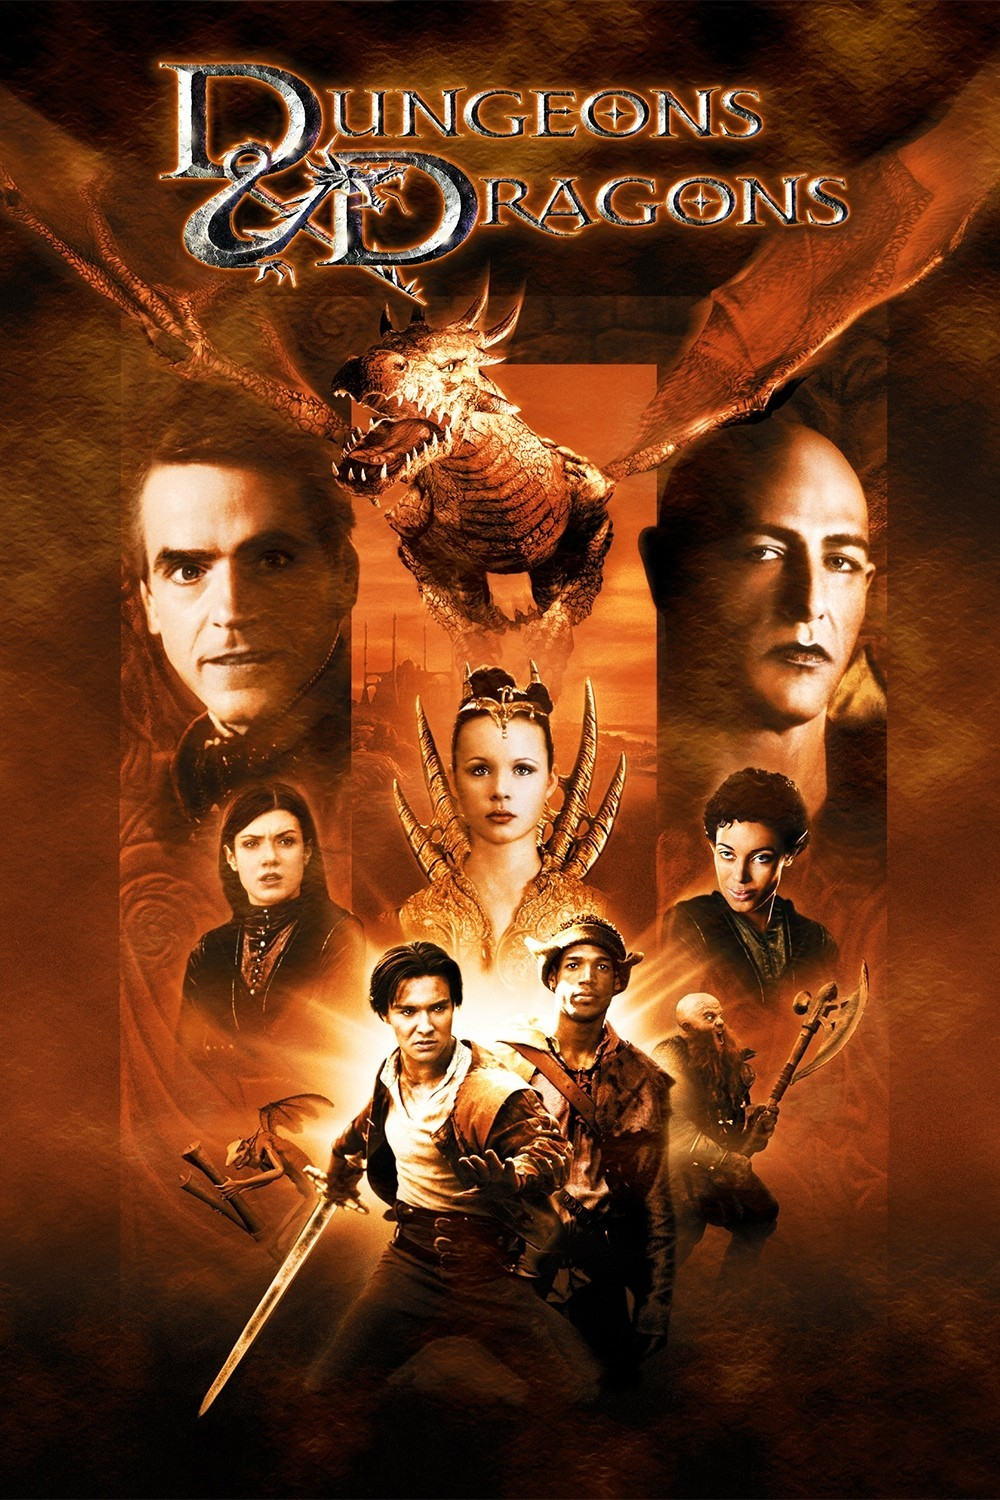 Dungeons-Dragons-2000-poster